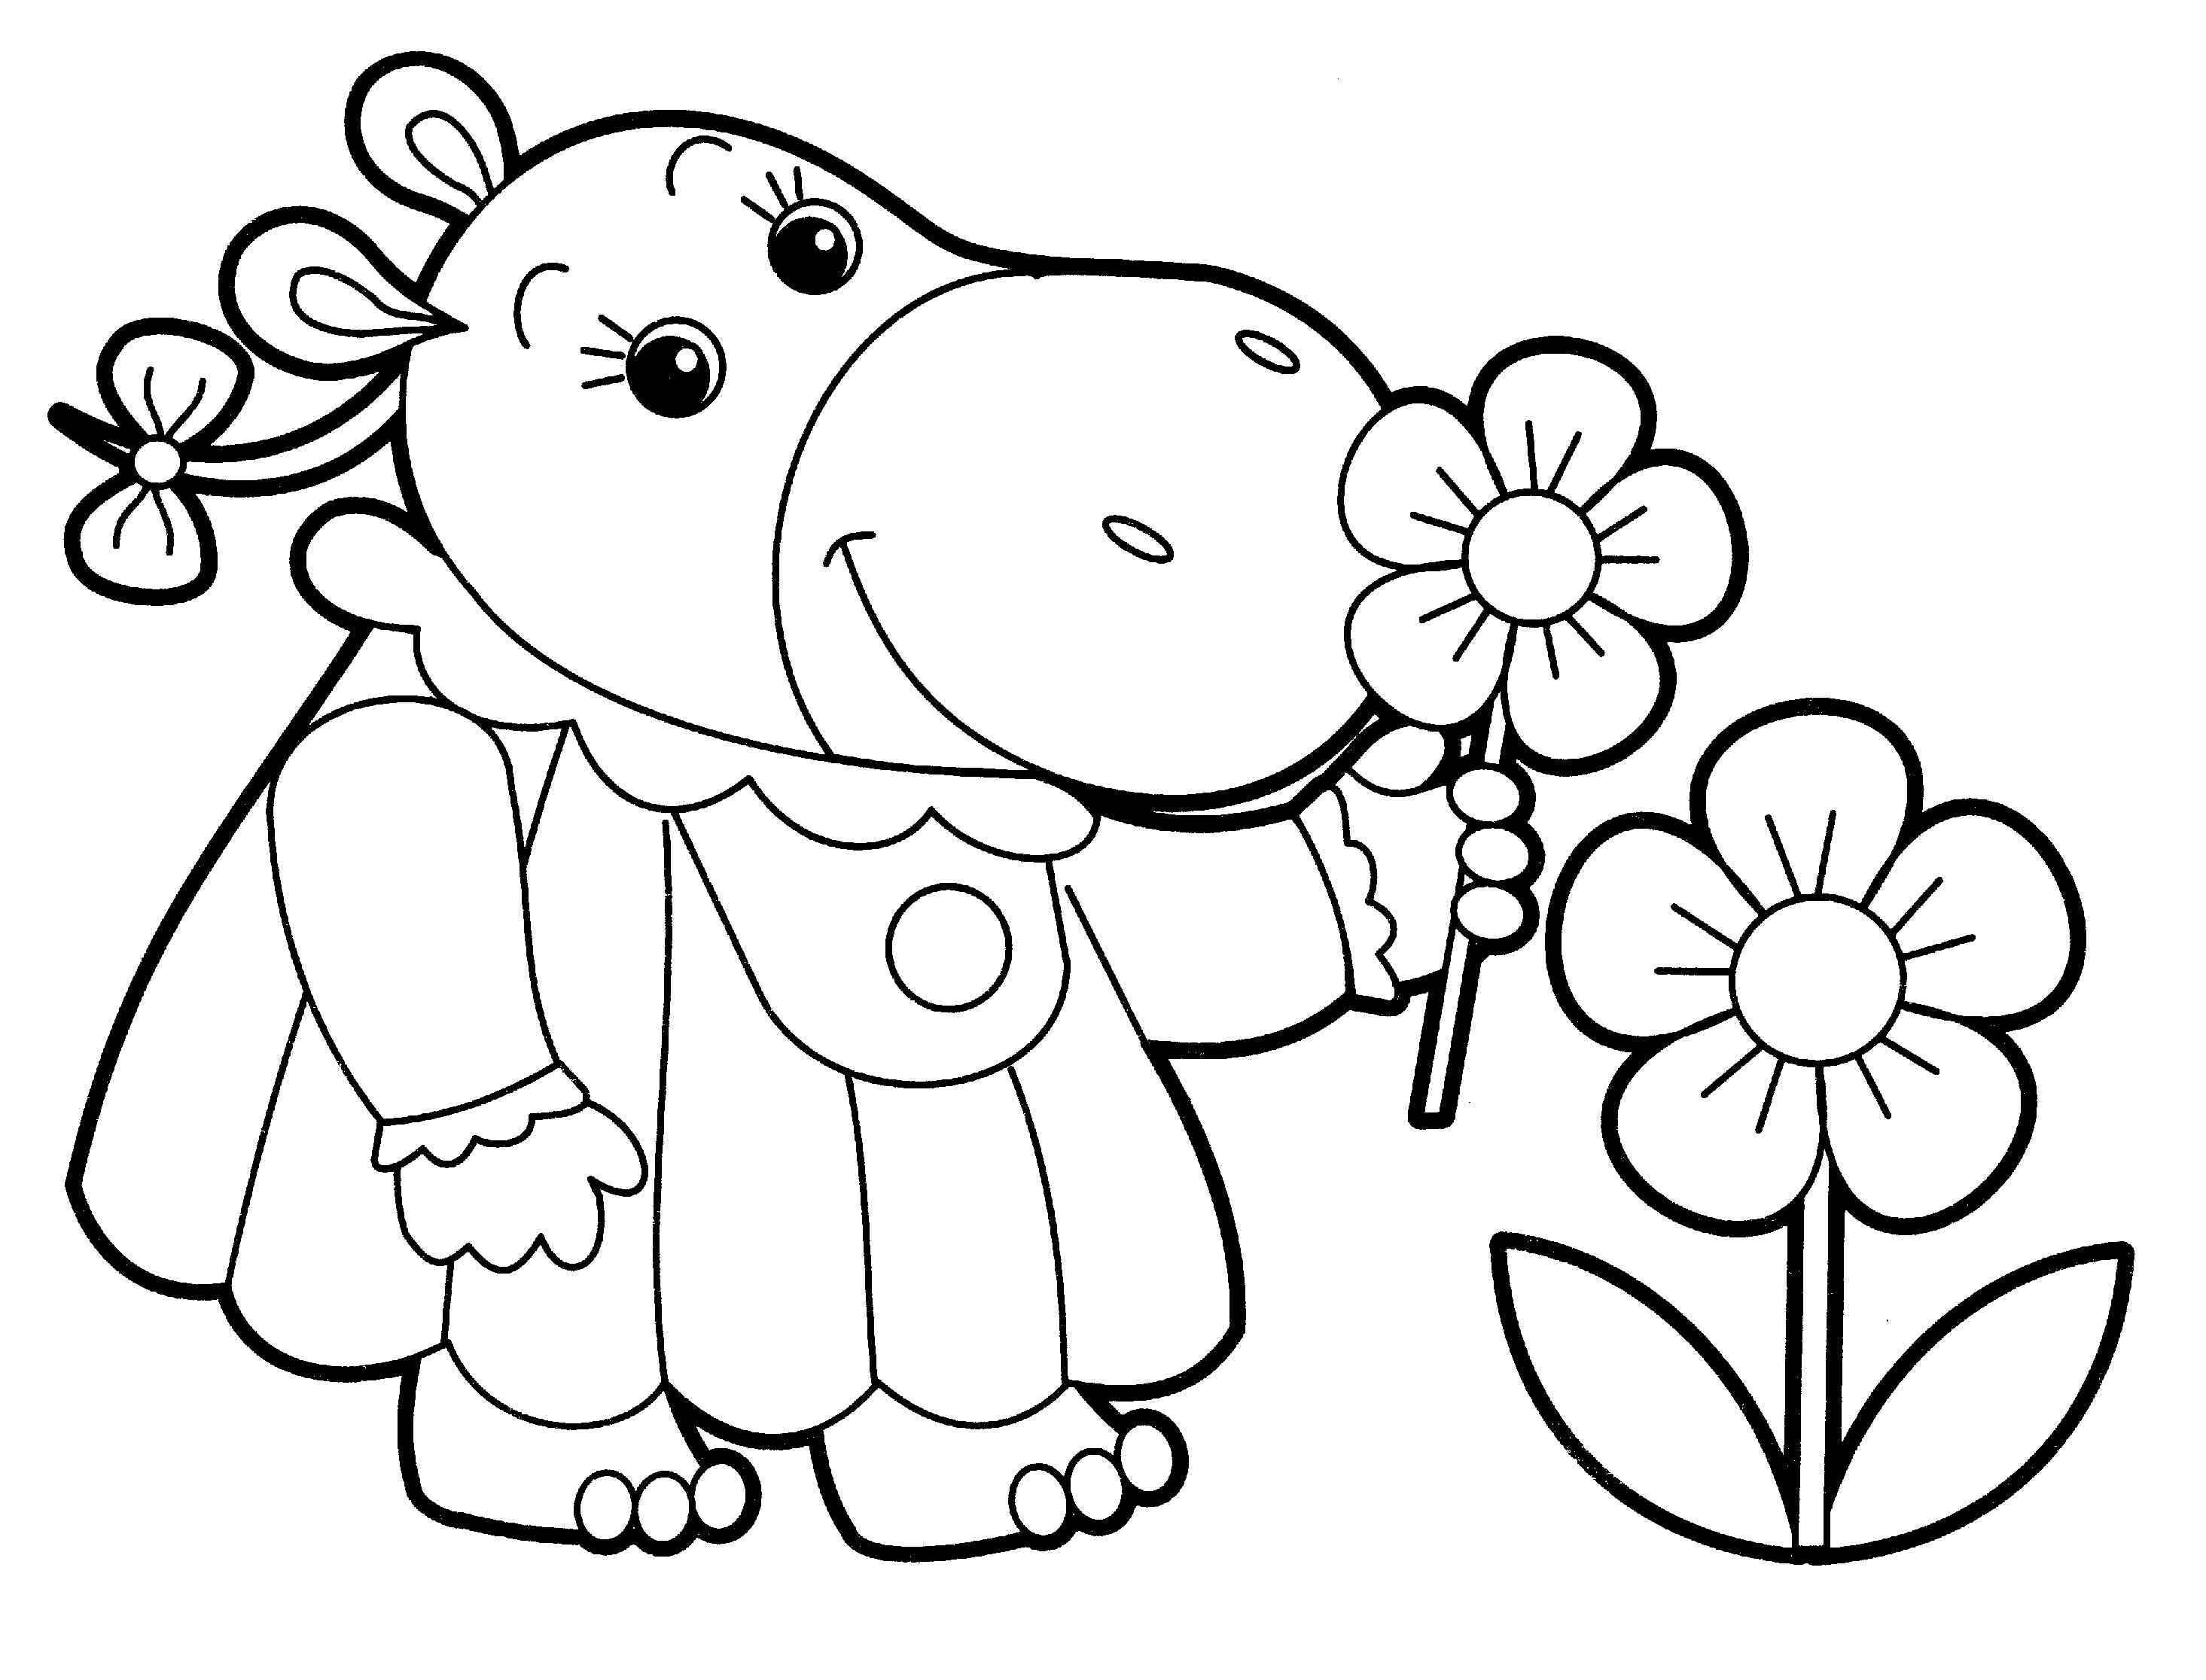 people coloring pages for kids - photo#31